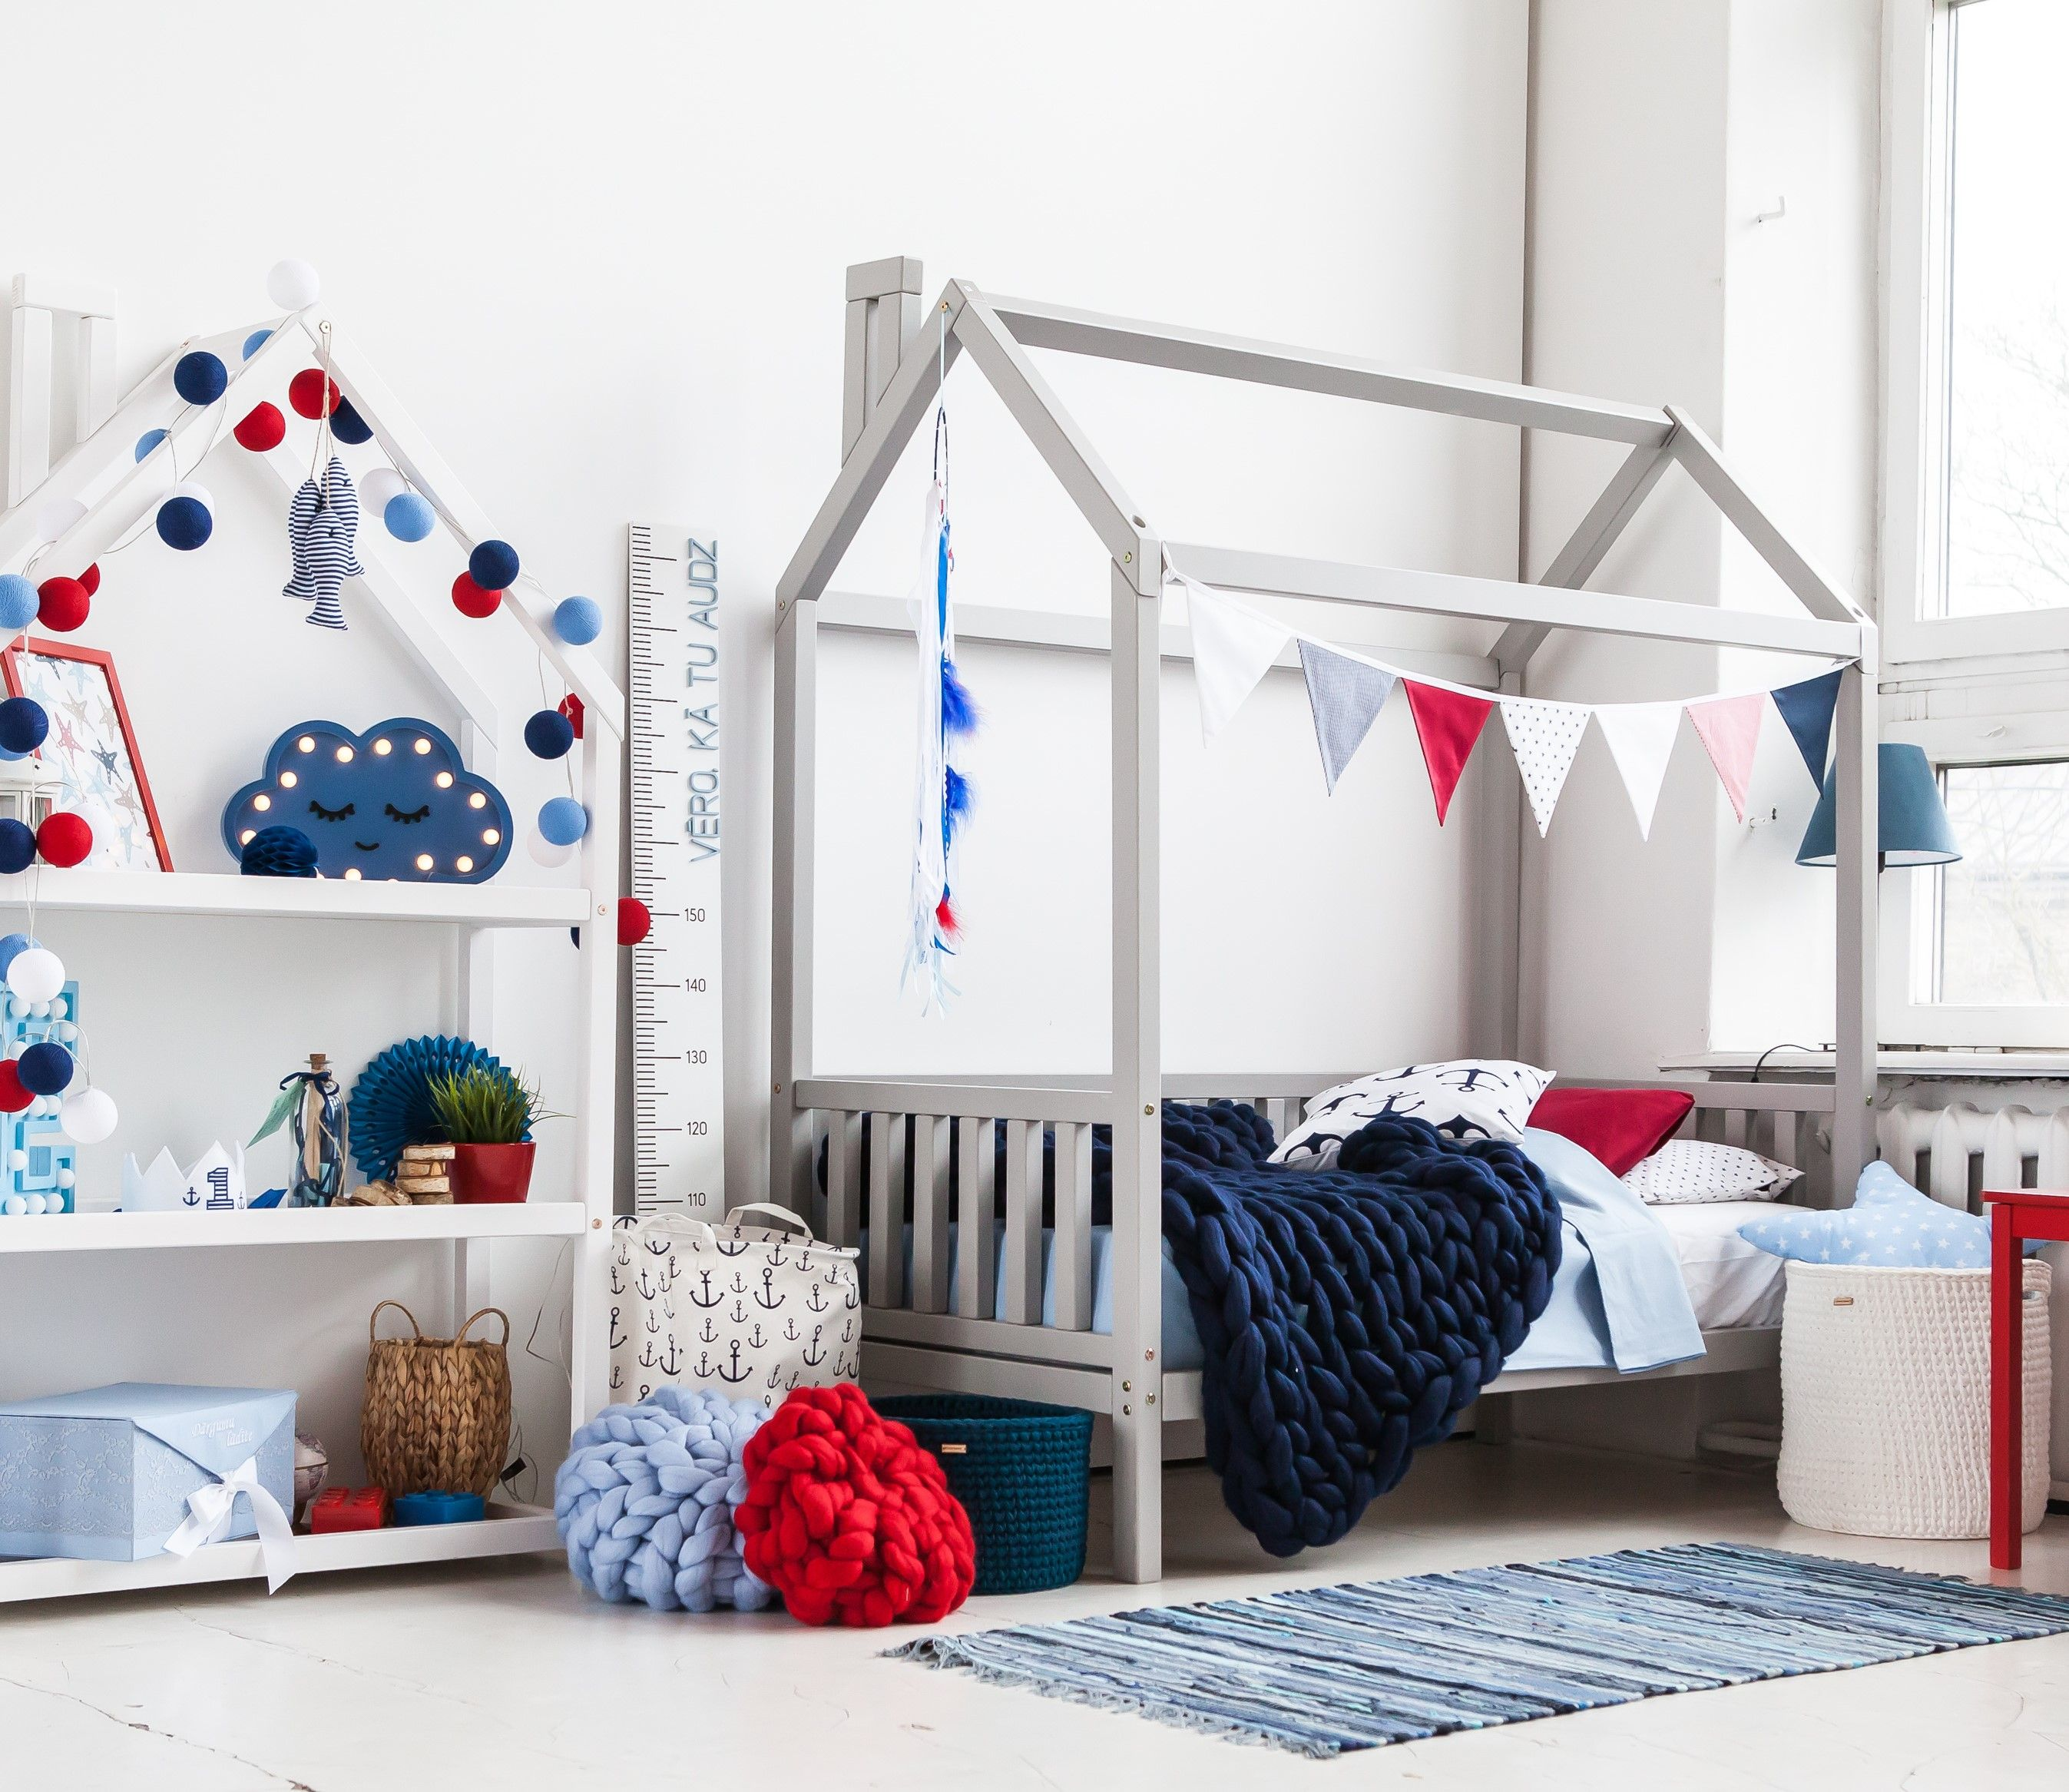 Toddler House Bed With Slats Montessori Bed Teepee Bed Kid Etsy House Frame Bed Toddler House Bed Montessori Bed